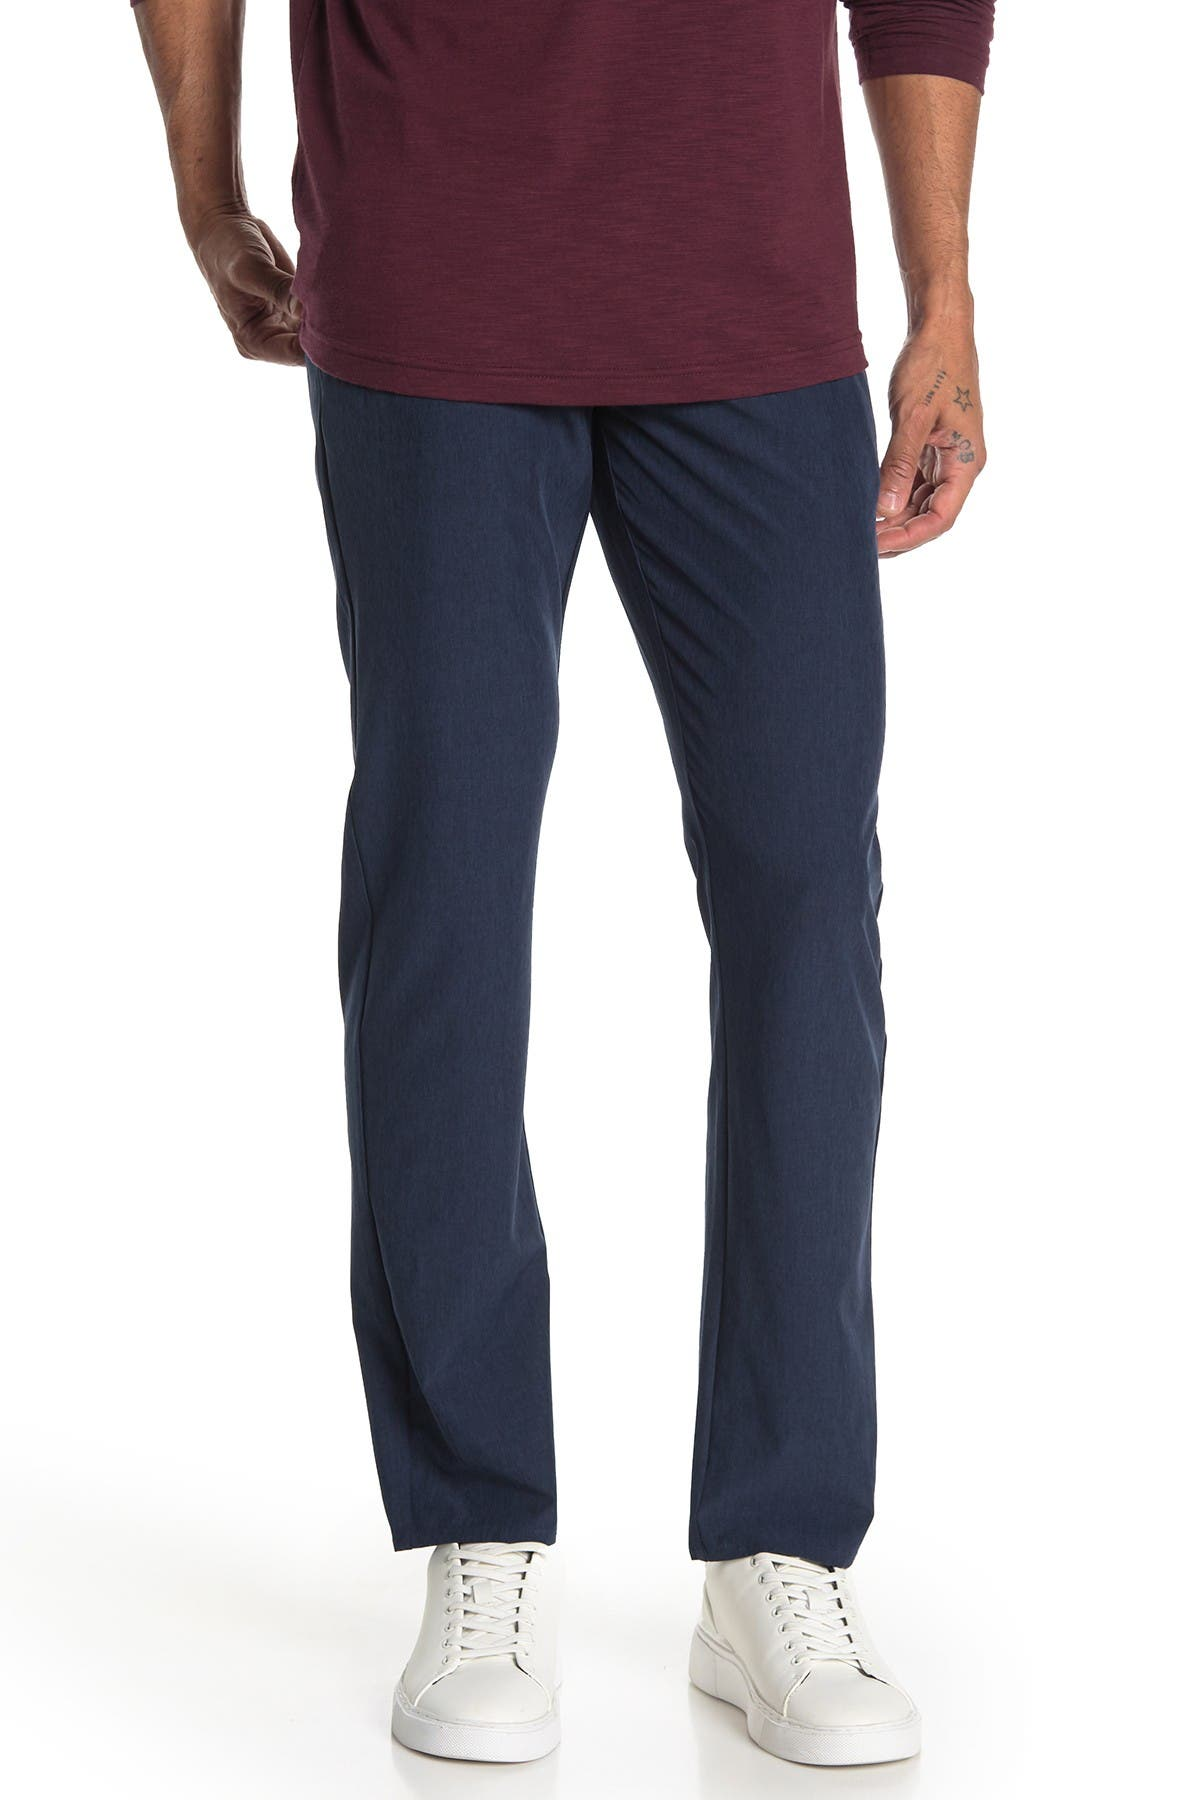 Image of TRAVIS MATHEW Laddium Performance Pants